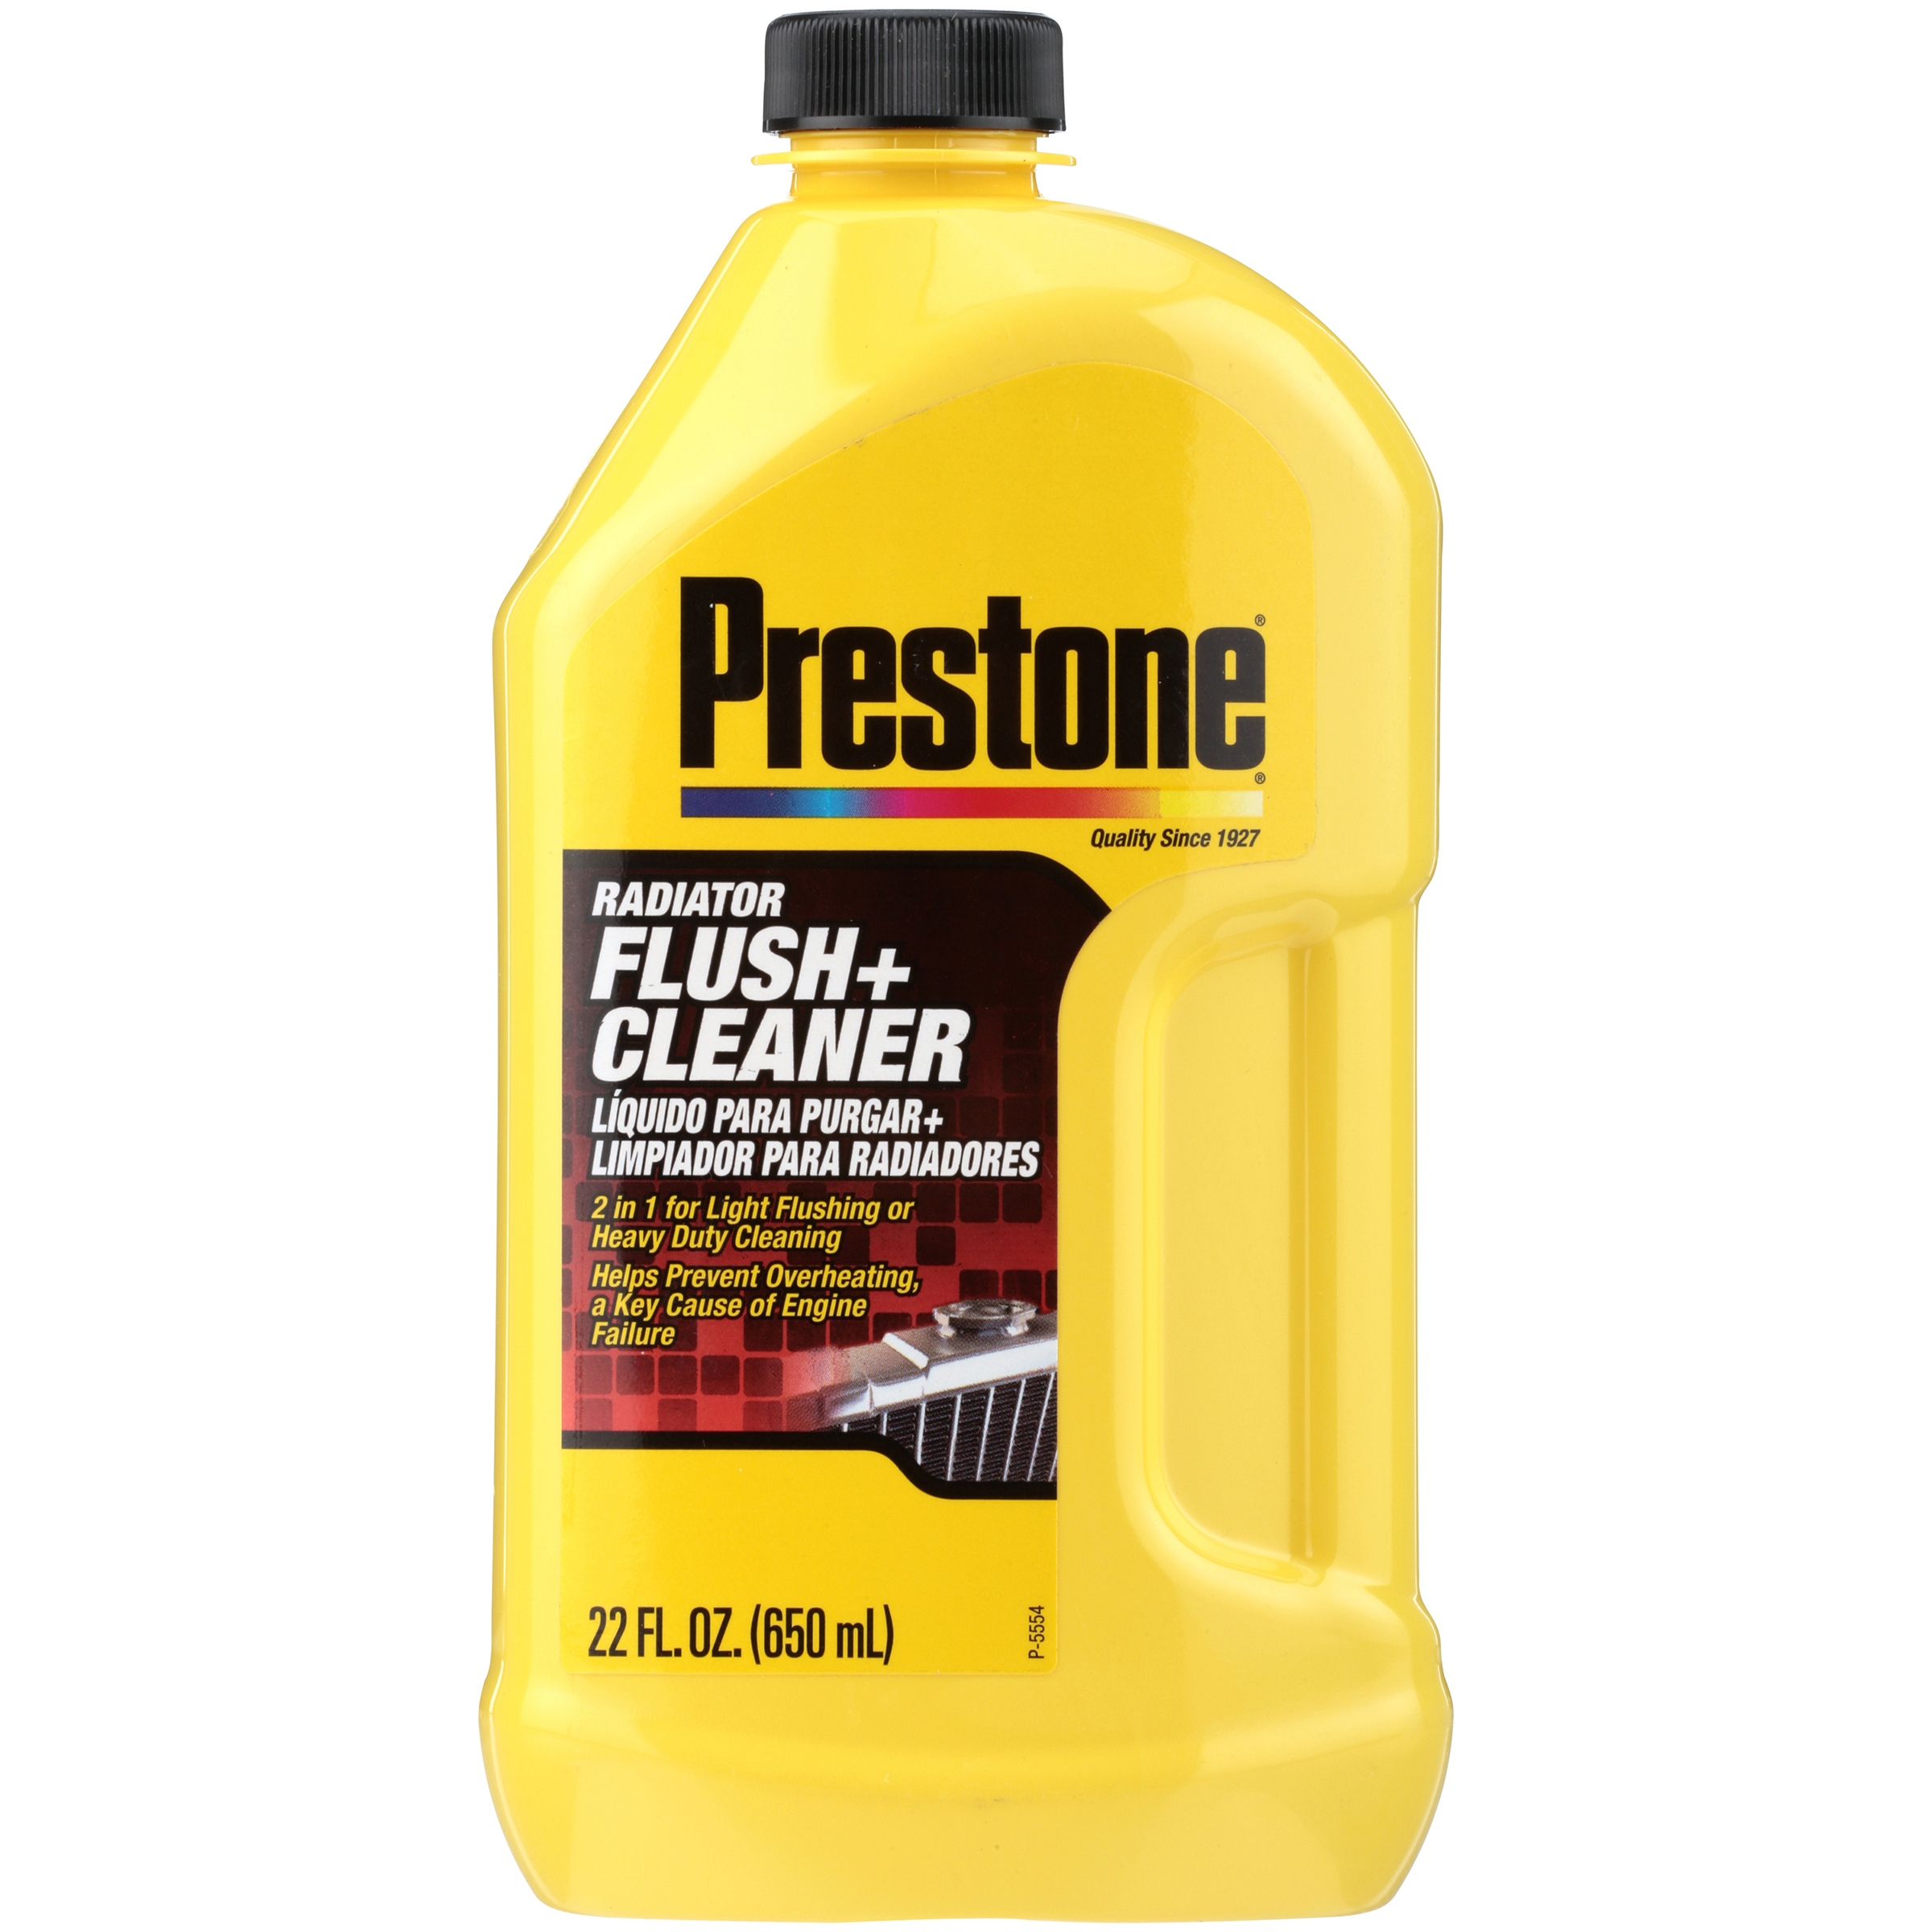 Prestone® Radiator Flush + Cleaner 22 fl. oz. Bottle